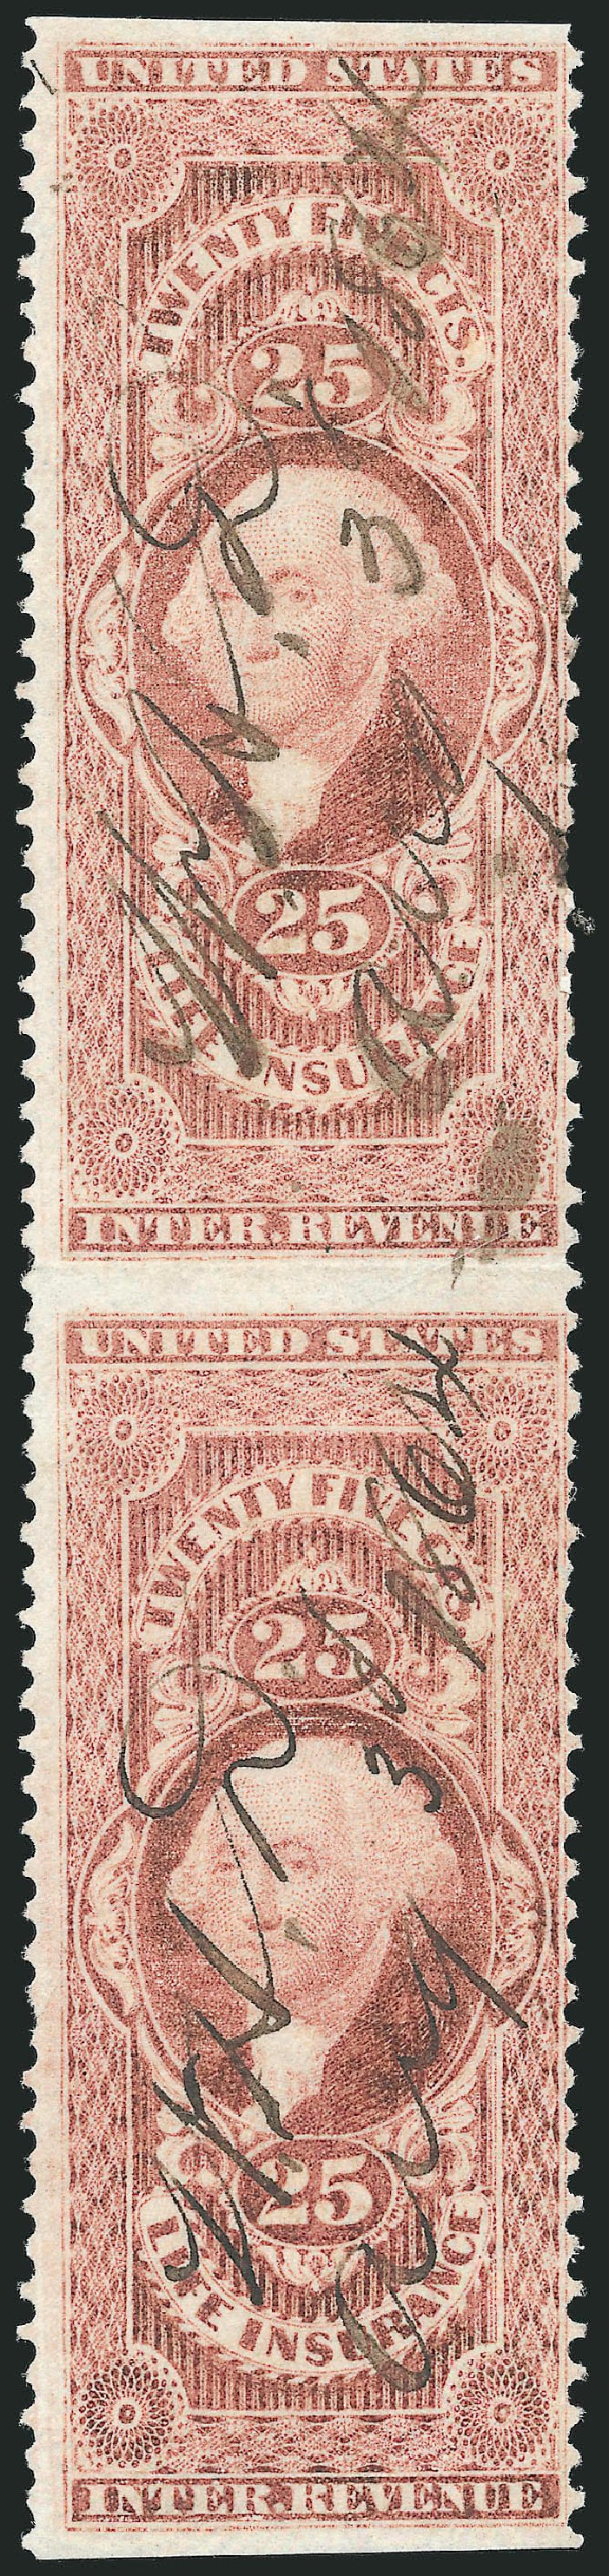 US Stamp Values Scott # R47 - 1862 25c Revenue Life Insurance. Robert Siegel Auction Galleries, Dec 2014, Sale 1089, Lot 404